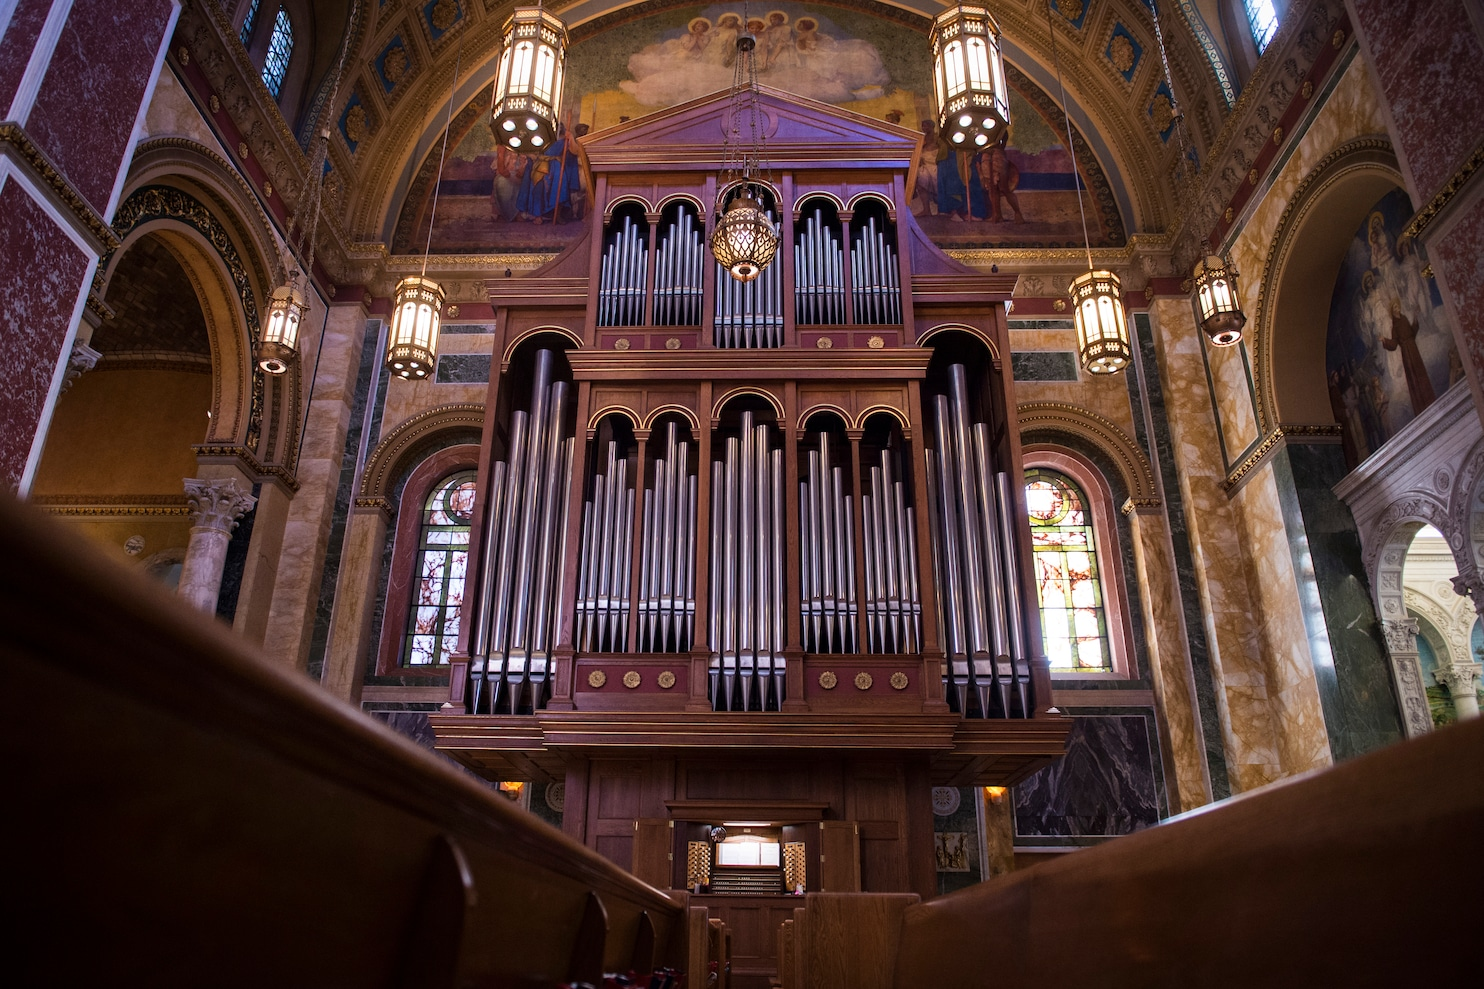 After 30 years a cathedrals towering organ may finally